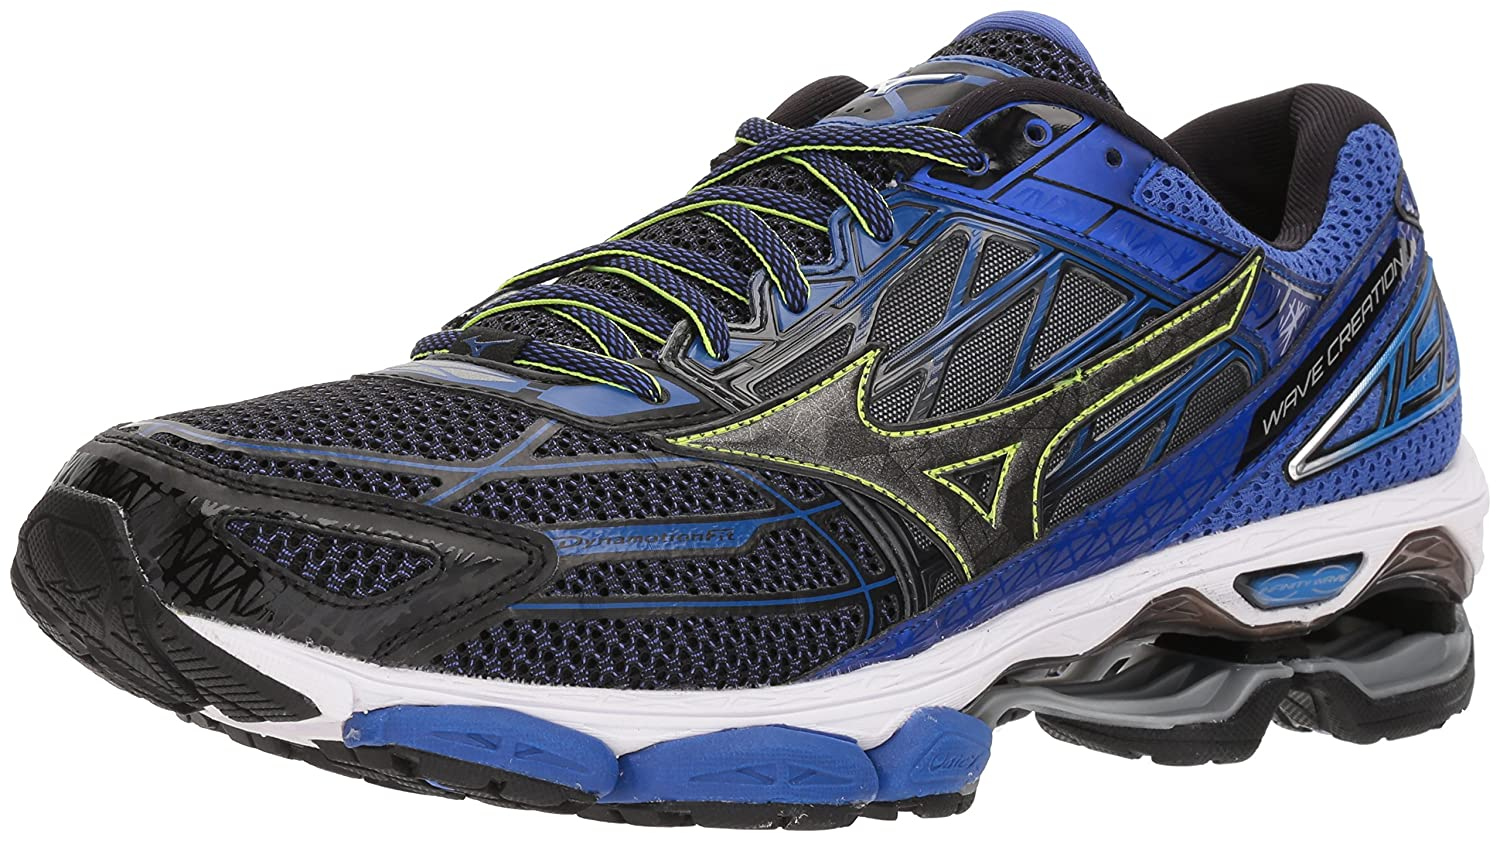 Mizuno Men's Wave Creation 19 Running Shoe B07119Z54R 11 D(M) US|Black